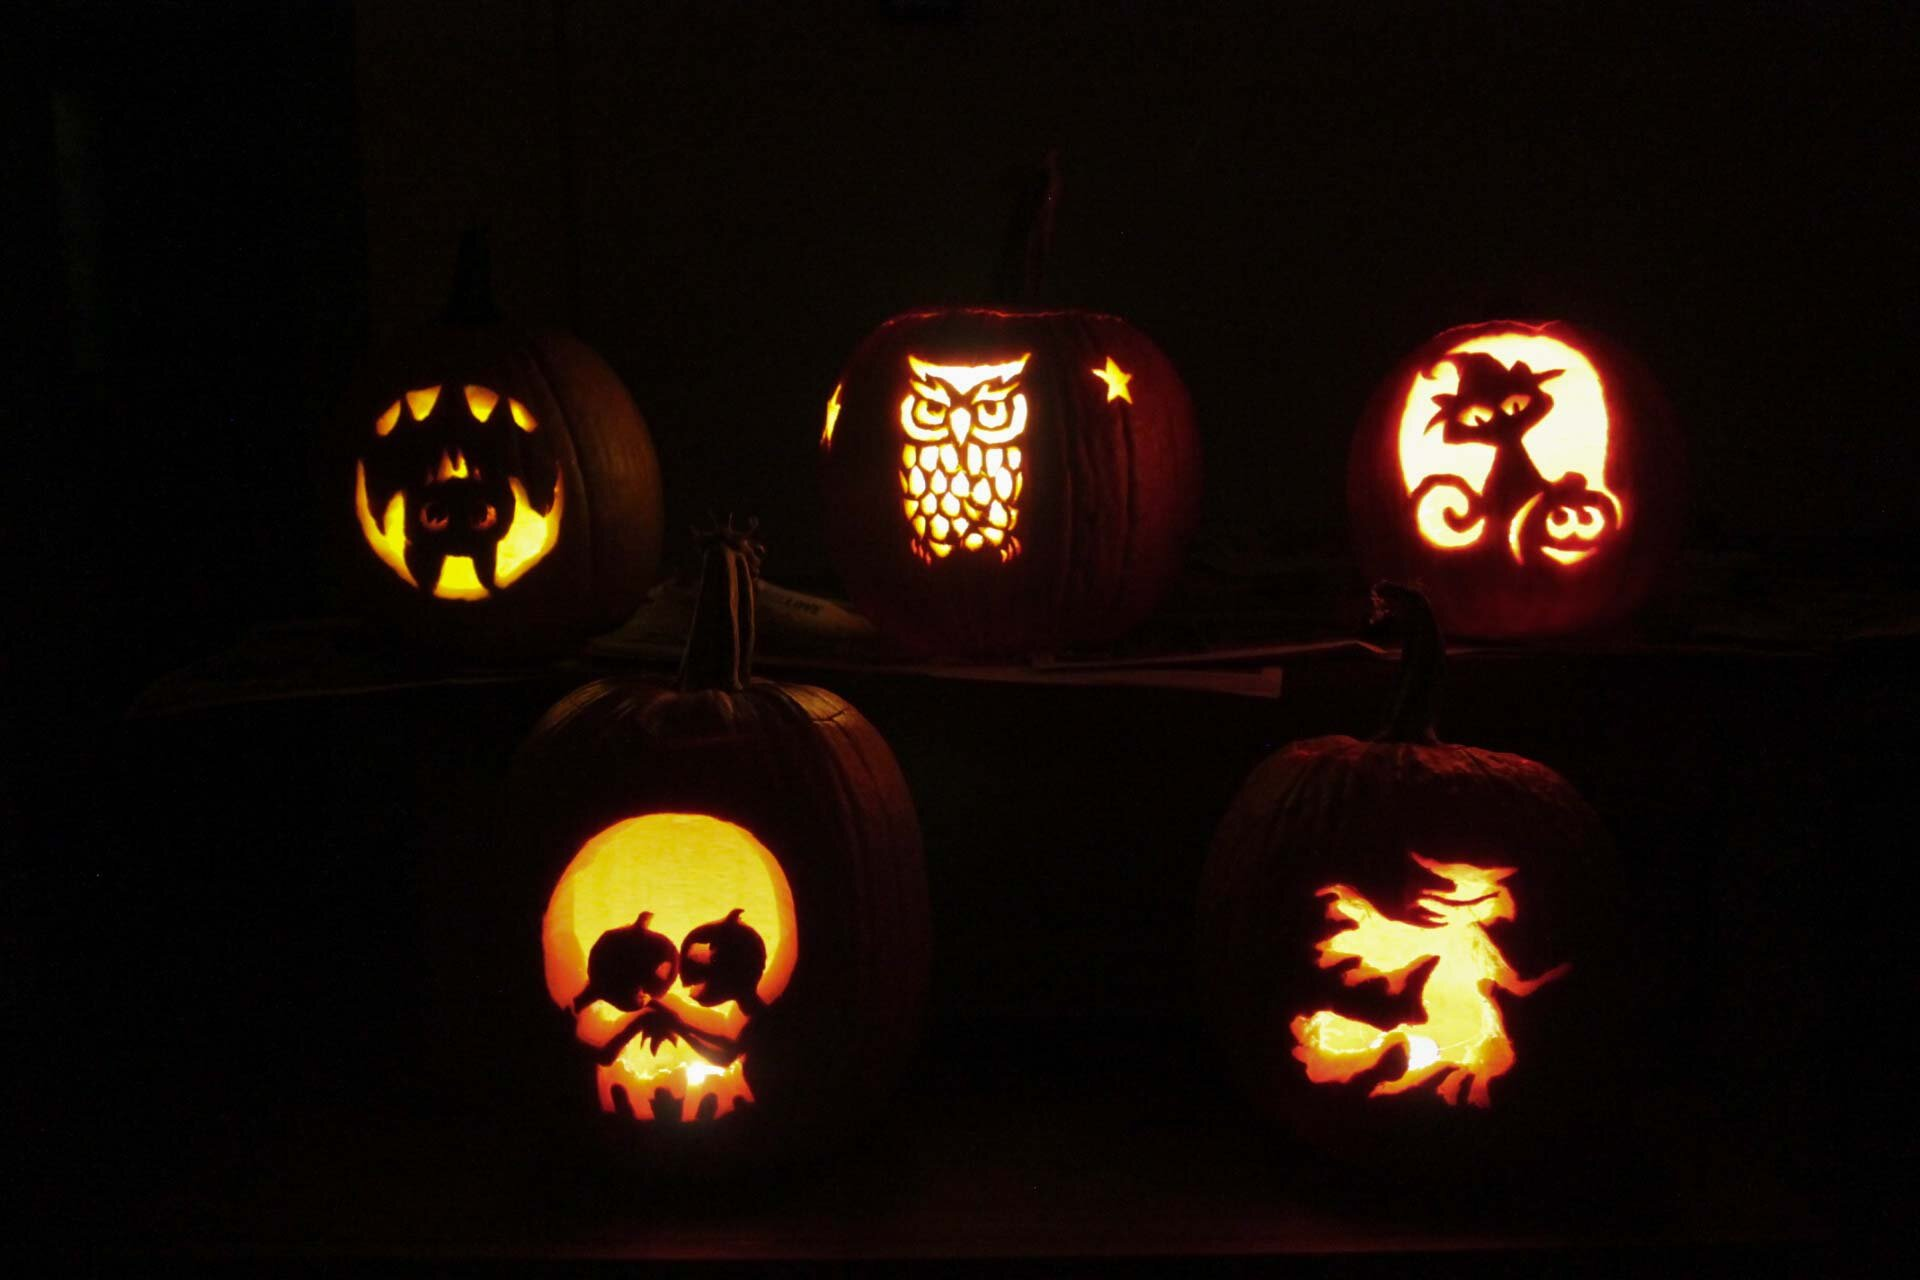 10-2015-Pumpkin-Carving (31 of 31).jpg